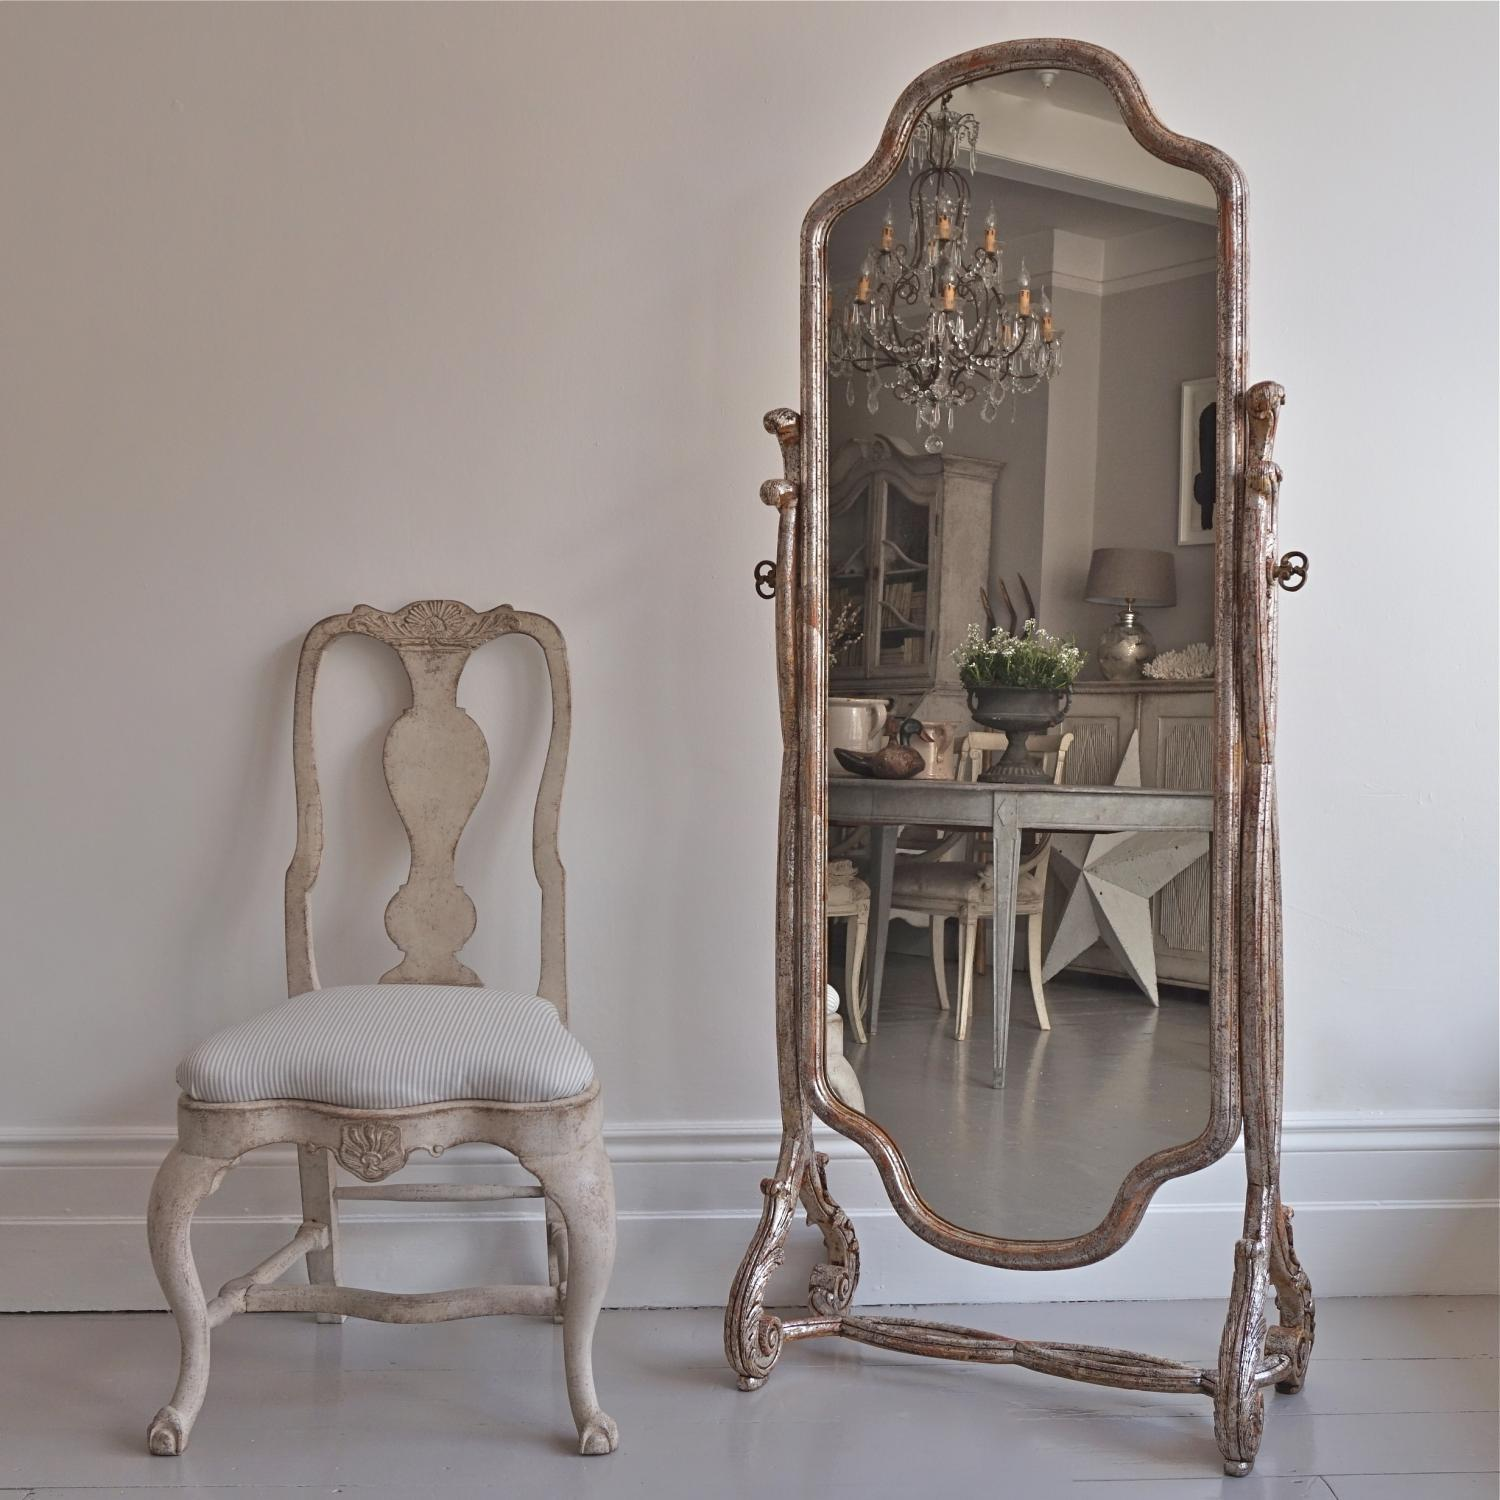 VERY RARE CHEVAL MIRROR IN ORIGINAL SILVER